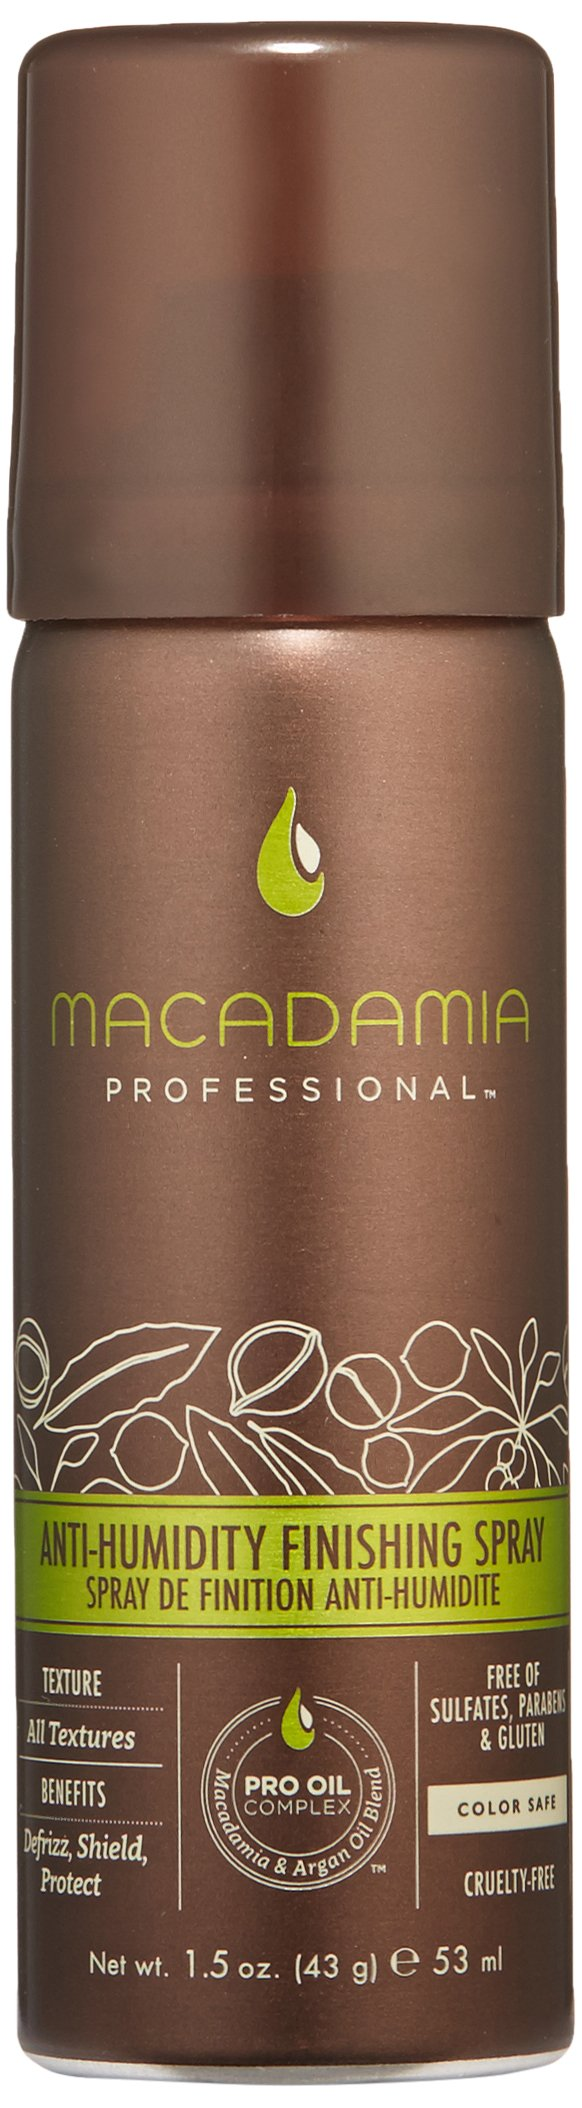 Macadamia Professional Anti-Humidity Finishing Spray - 1.5 oz. - All Hair Textures - Repels Humidity & Fights Frizz - Sulfate, Gluten & Paraben Free, Safe for Color-Treated Hair